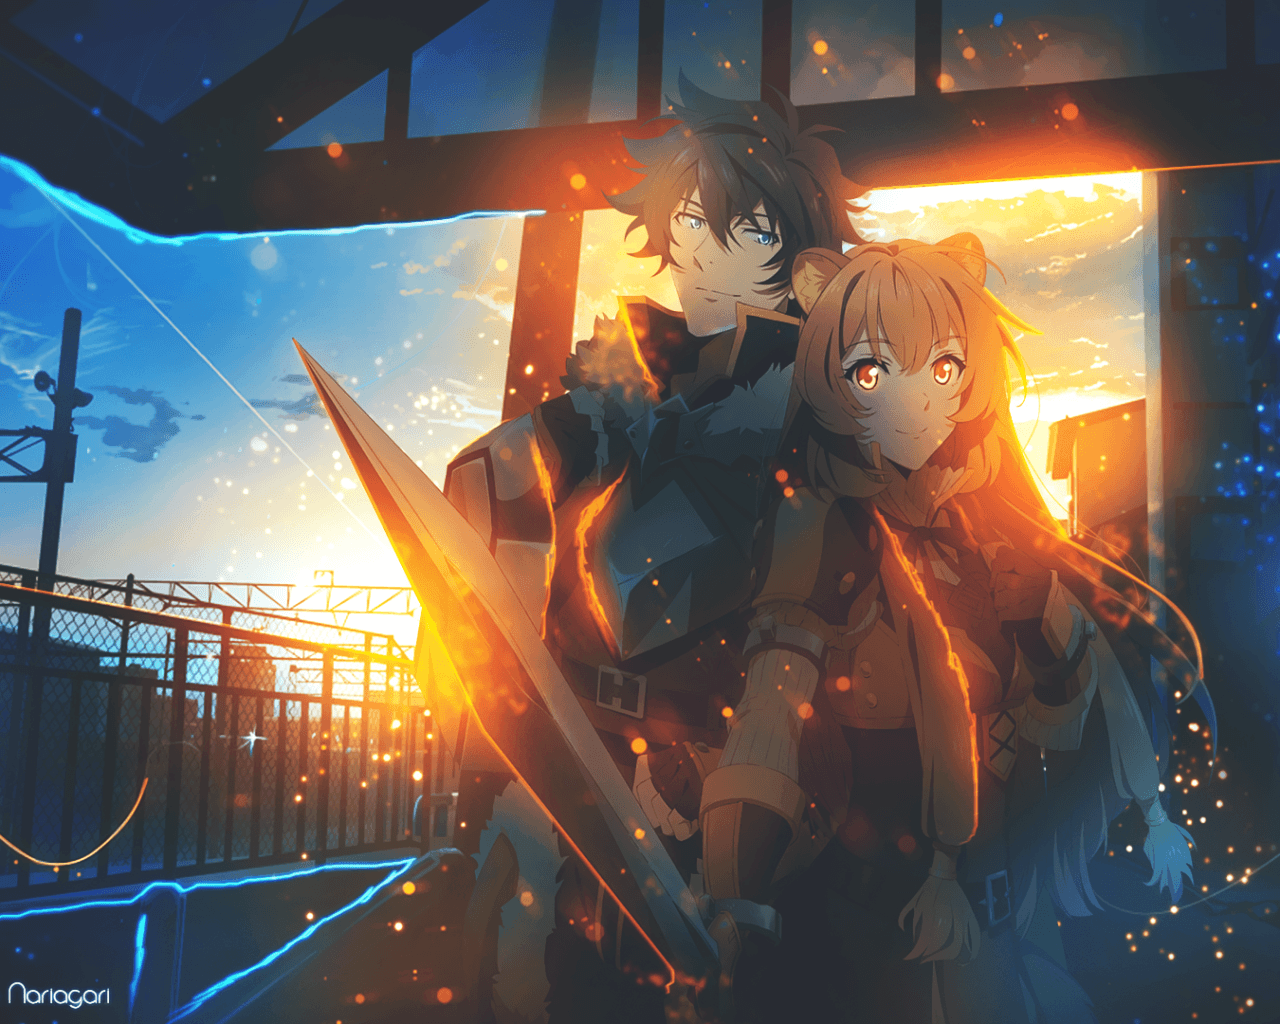 Download 1280x1024 Iwatani Naofumi, Raphtalia, Anime Couple, Cute